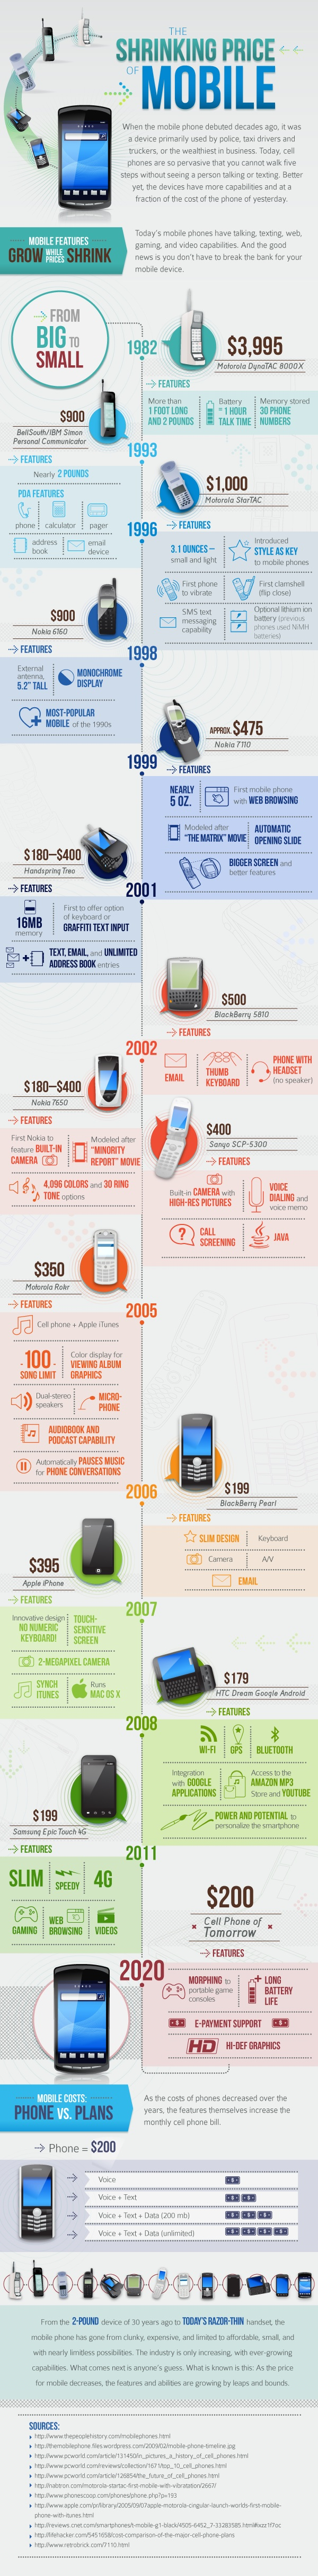 Cell phone size and cost infographic